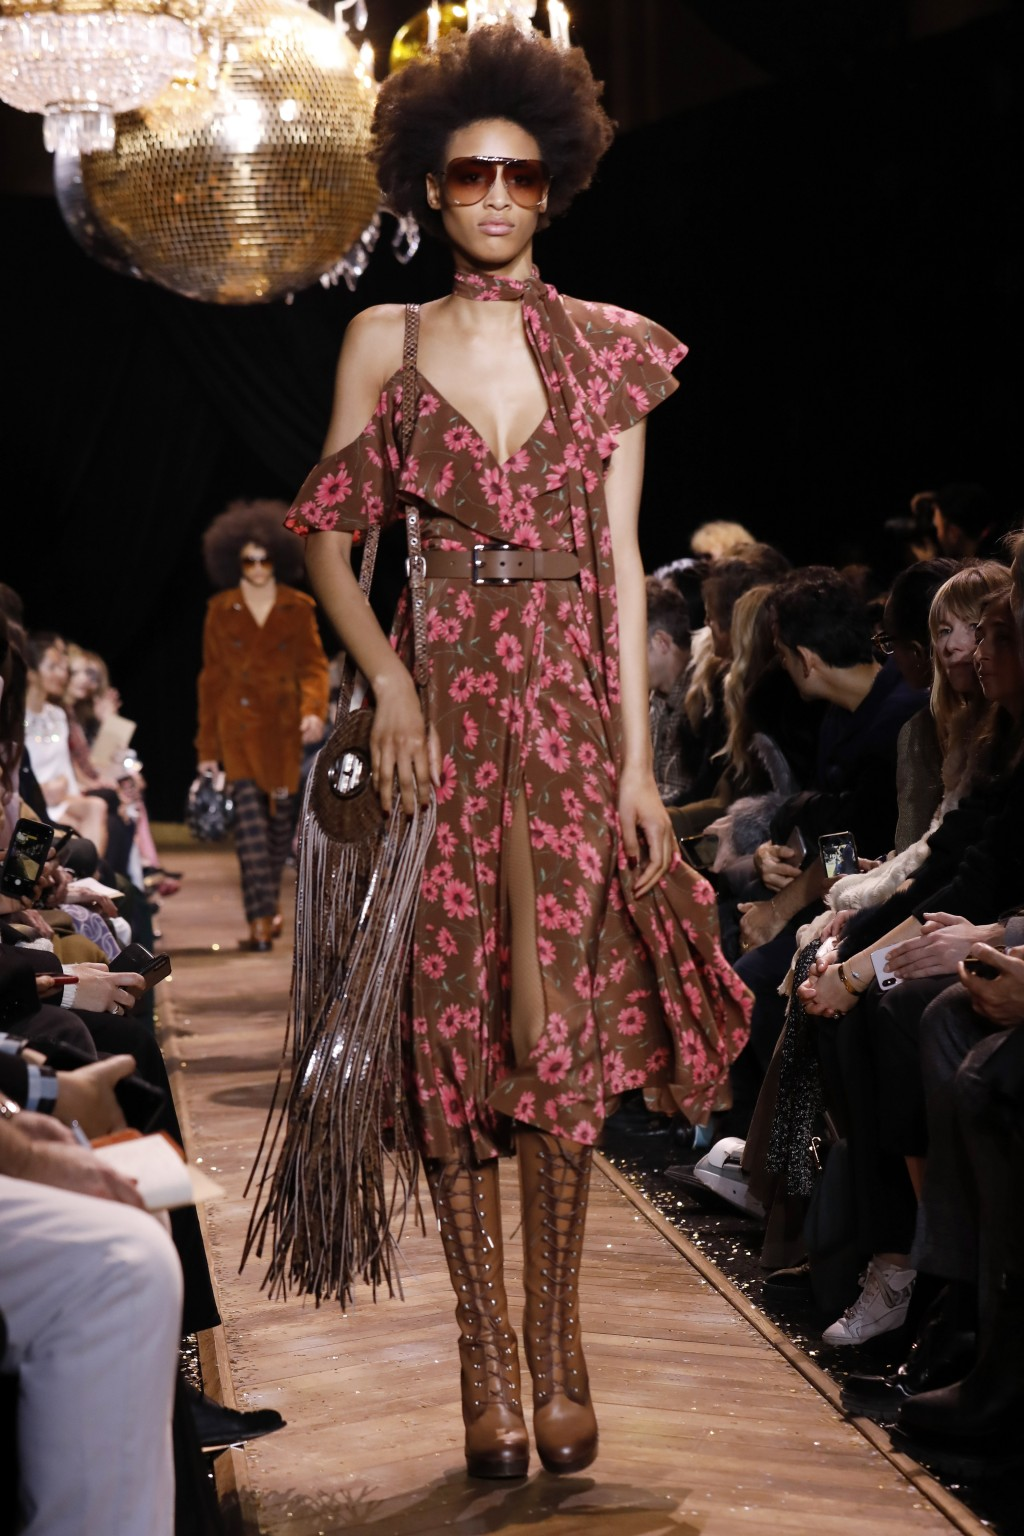 The Michael Kors collection is modeled during Fashion Week in New York, Wednesday, Feb. 13, 2019. (AP Photo/Richard Drew)